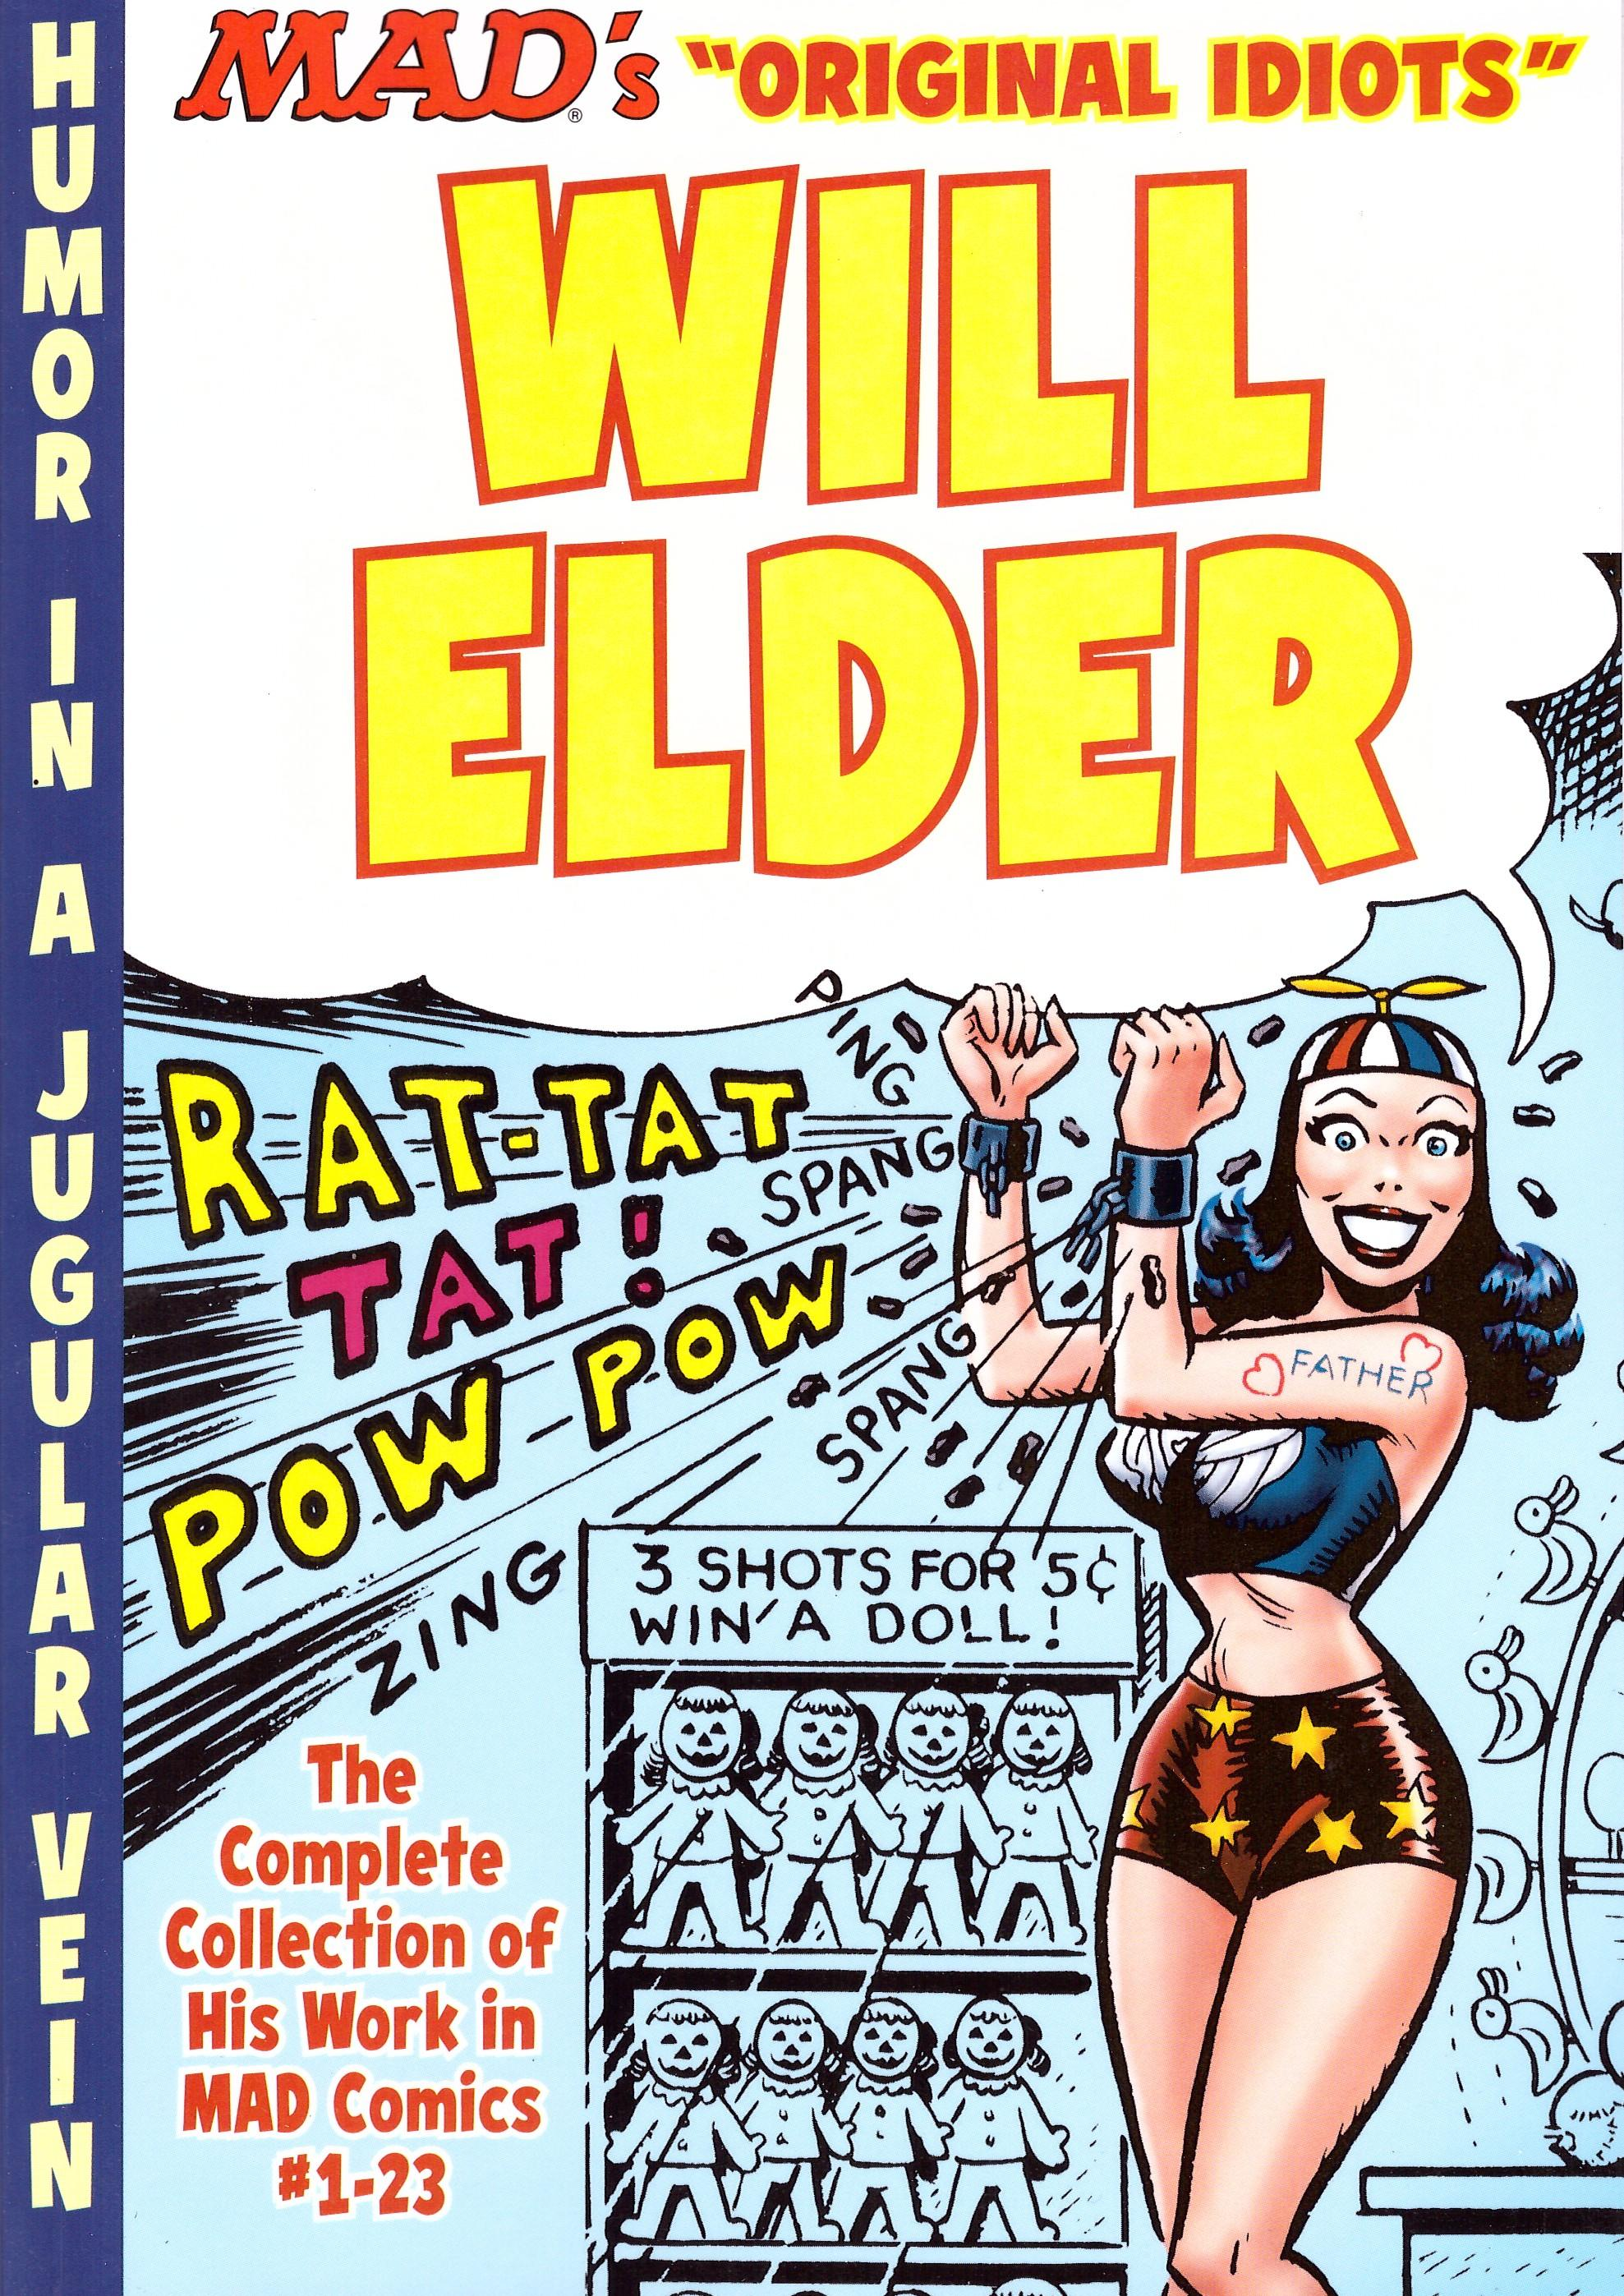 The MAD Art of Will Elder: The Complete Collection of His Work from MAD Comics #1-23 • USA • 1st Edition - New York